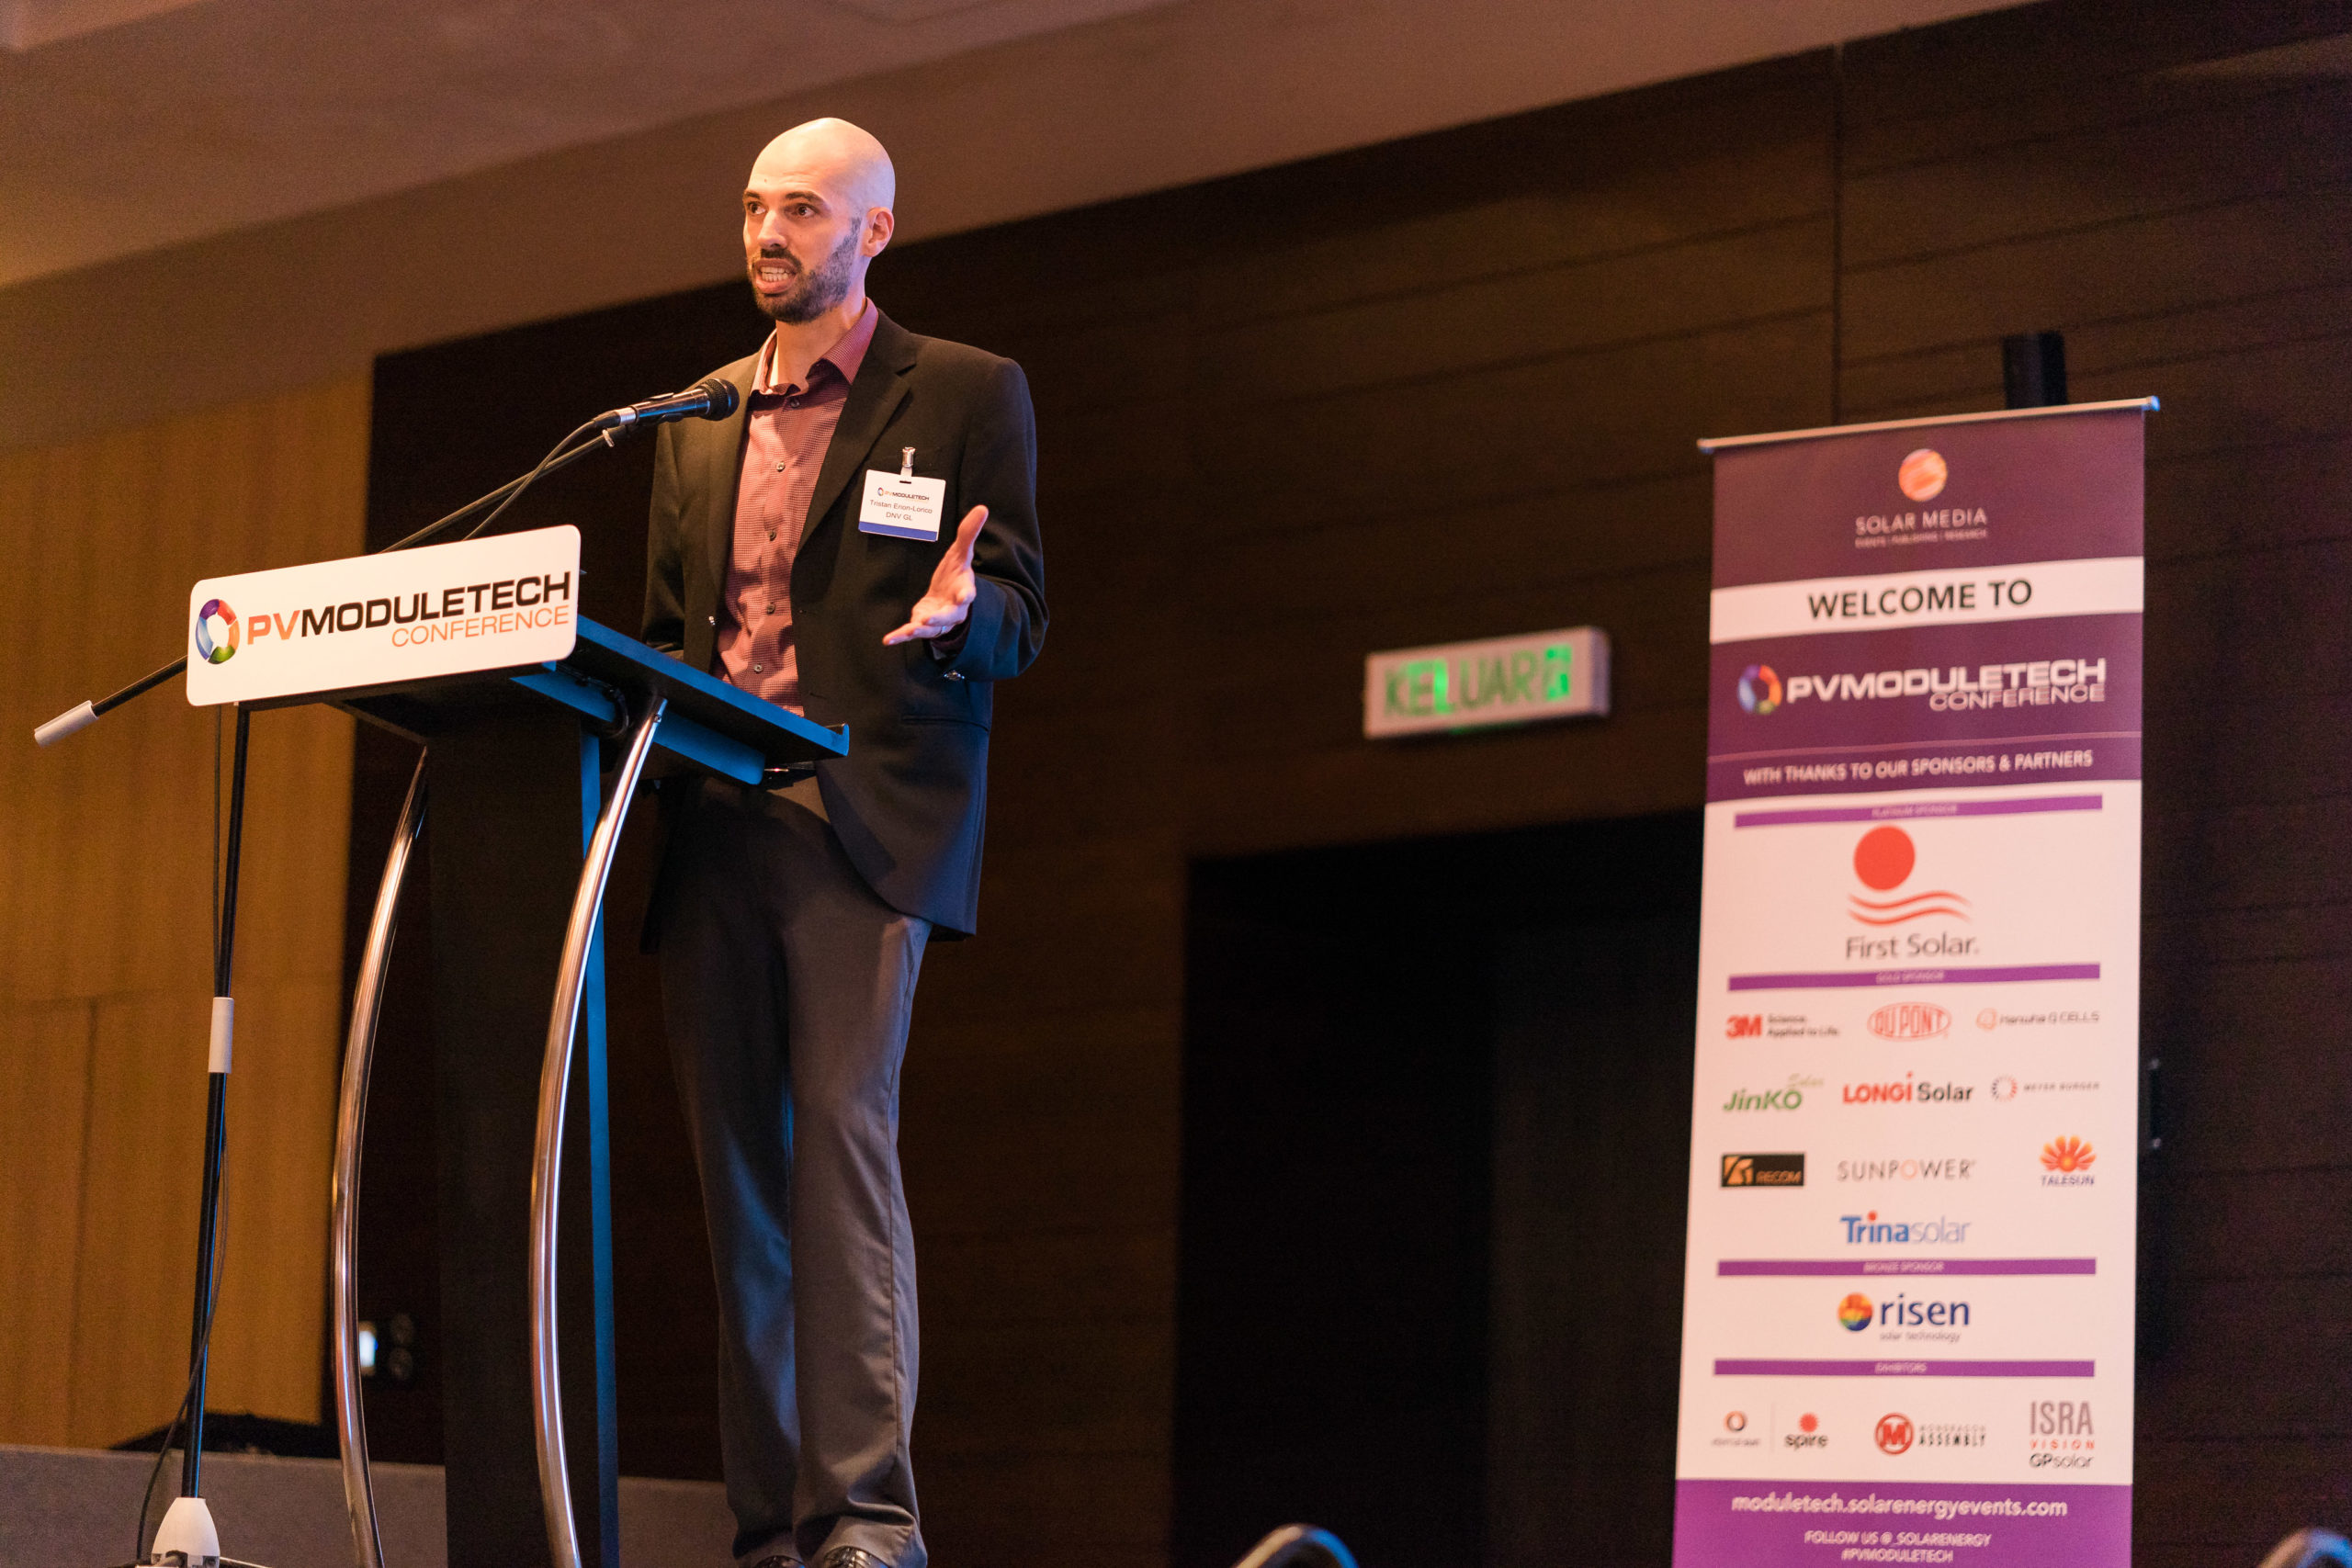 Tristan Erion-Lorico, Head of PV Module Business, Laboratory Services, at quality assurance and risk management company, DNV GL, at PV ModuleTech 2018 in Penang.